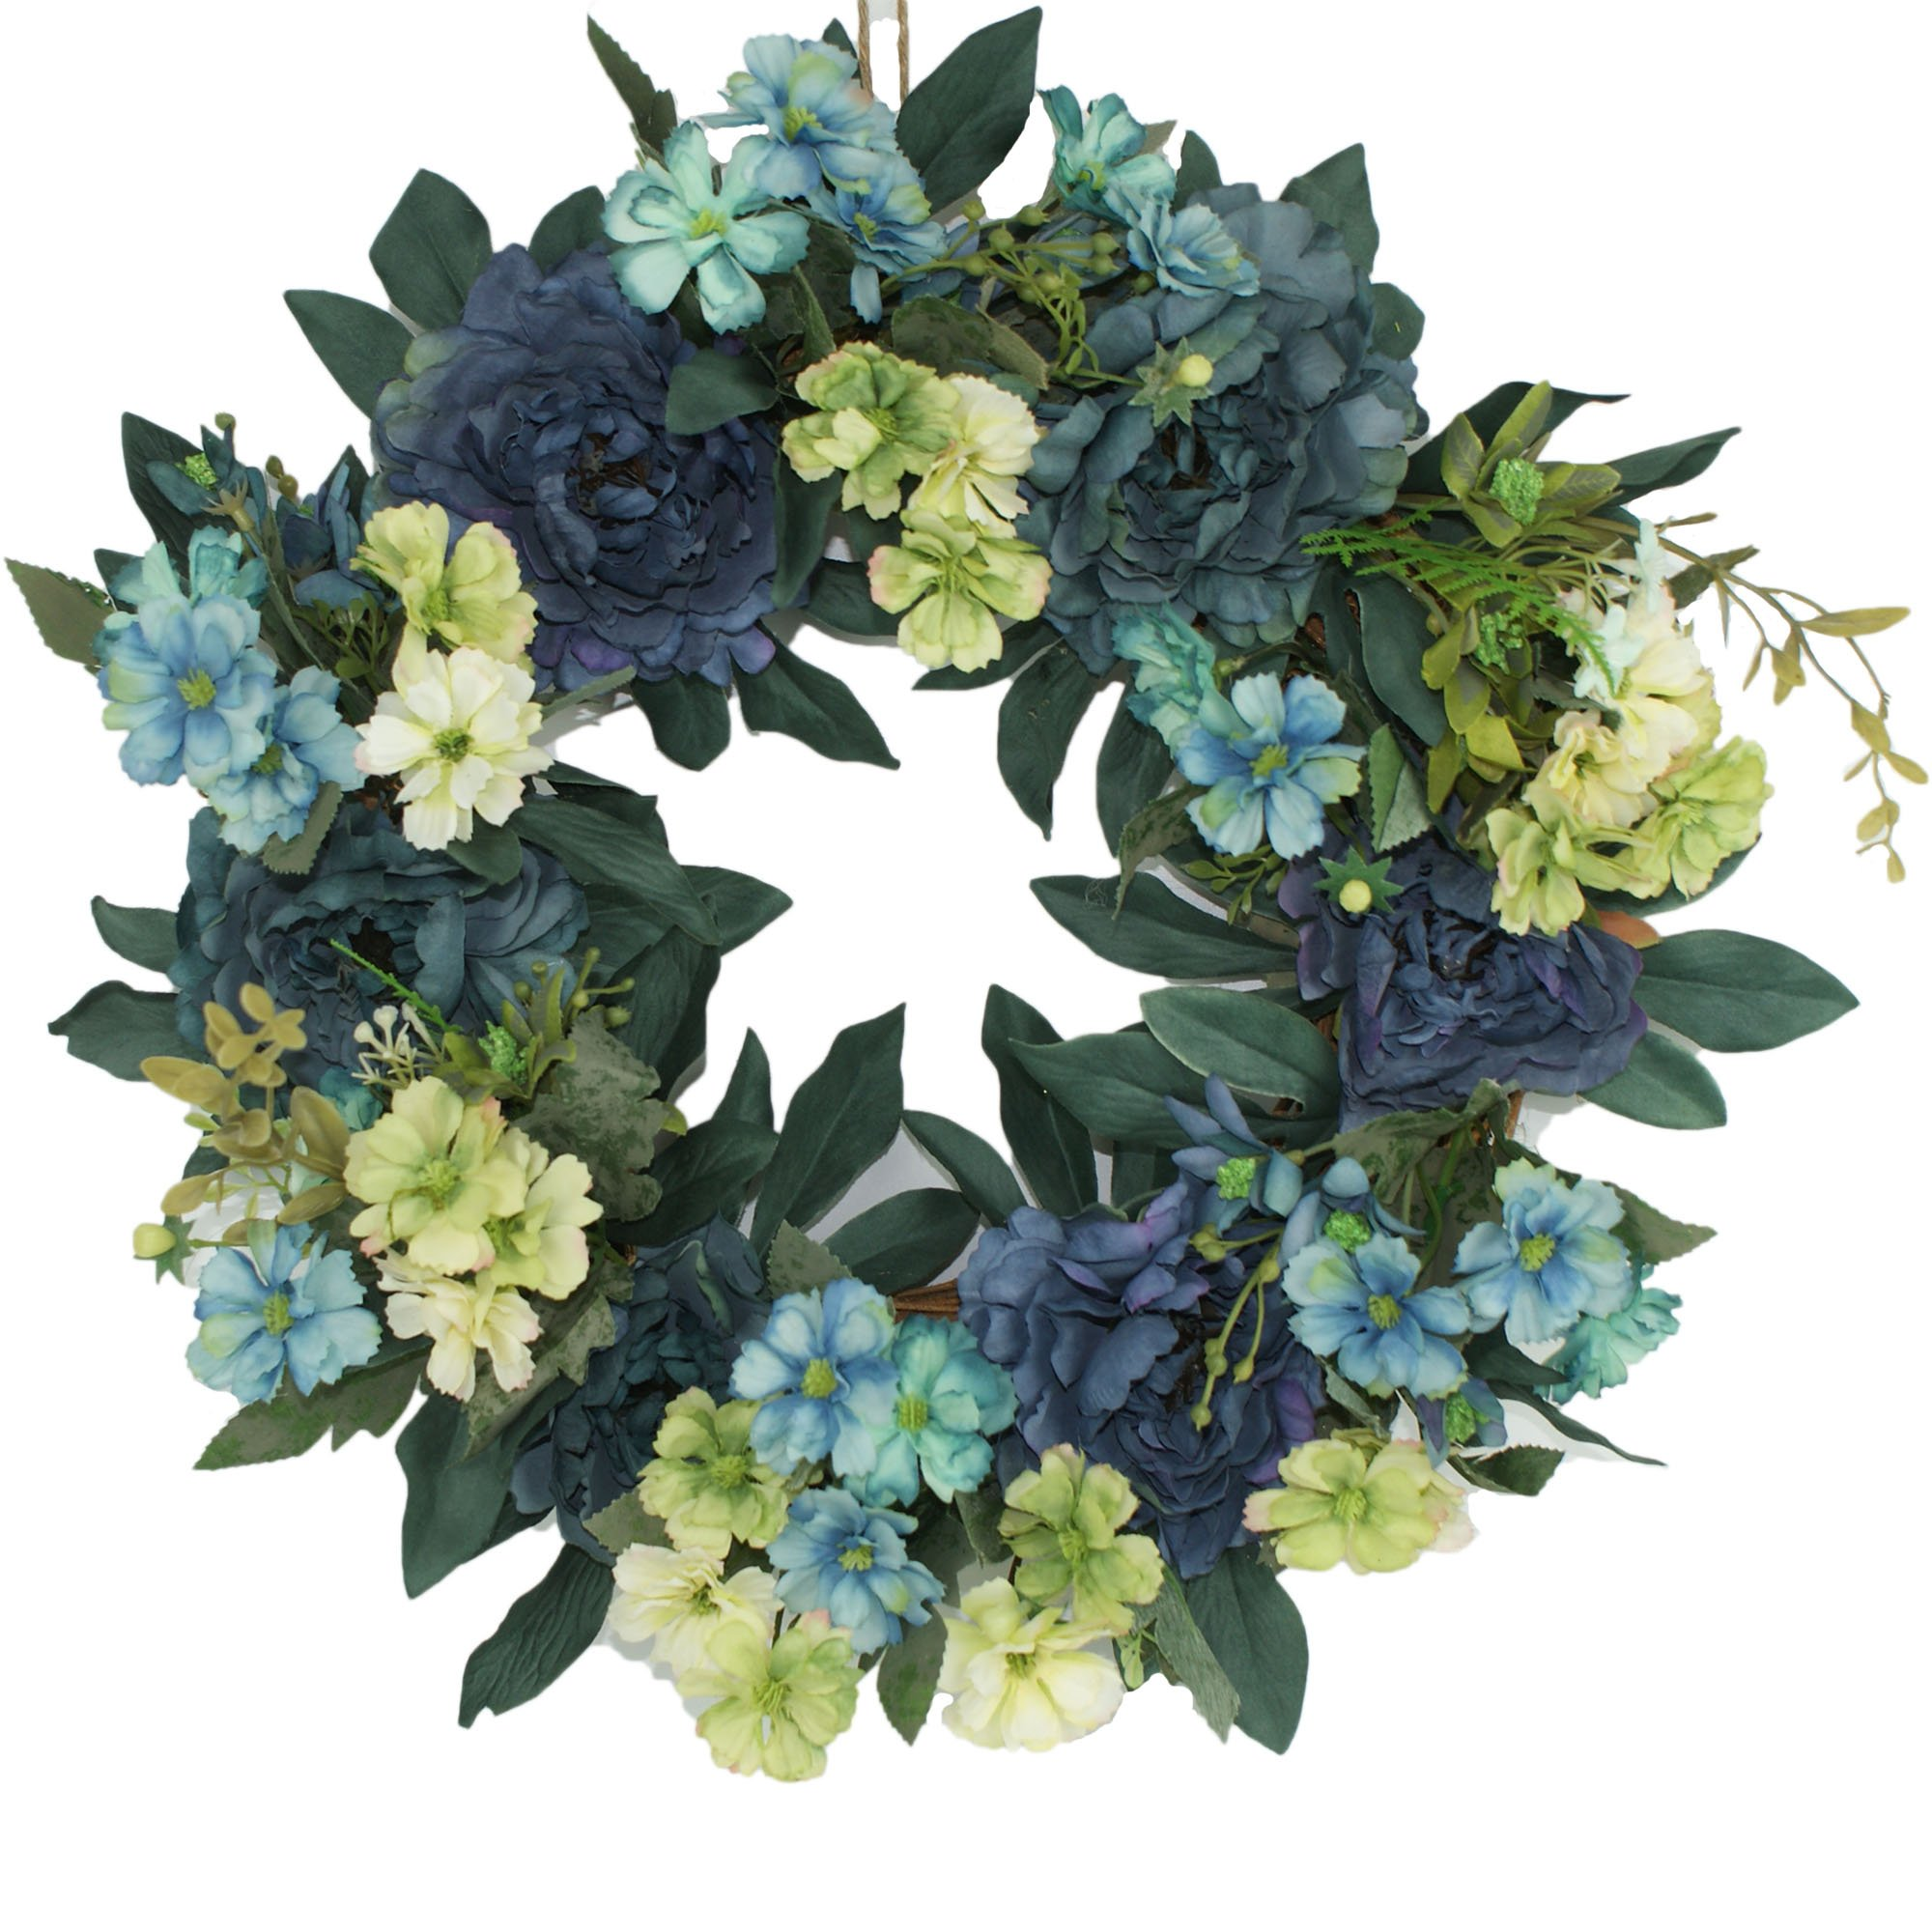 Emlyn Silk Summer Door Wreath 16 Inch -Handcrafted On A Grapevine Wreath Base- Blue And Purple Tones